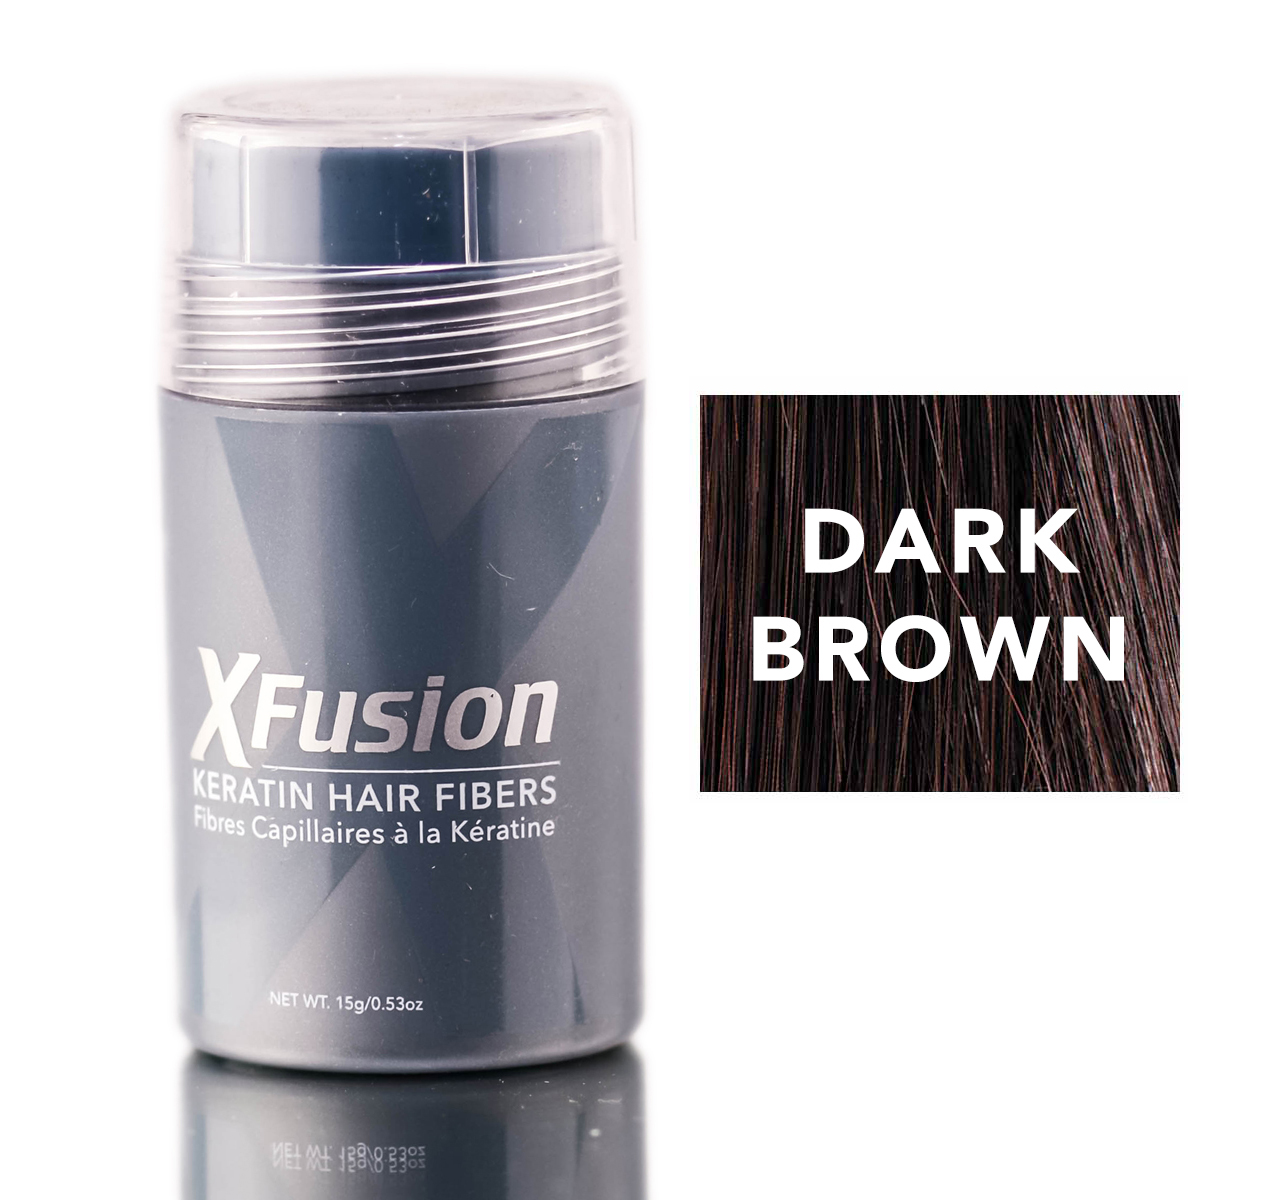 XFusion Dark Brown Keratin Hair Fibers 667820017030